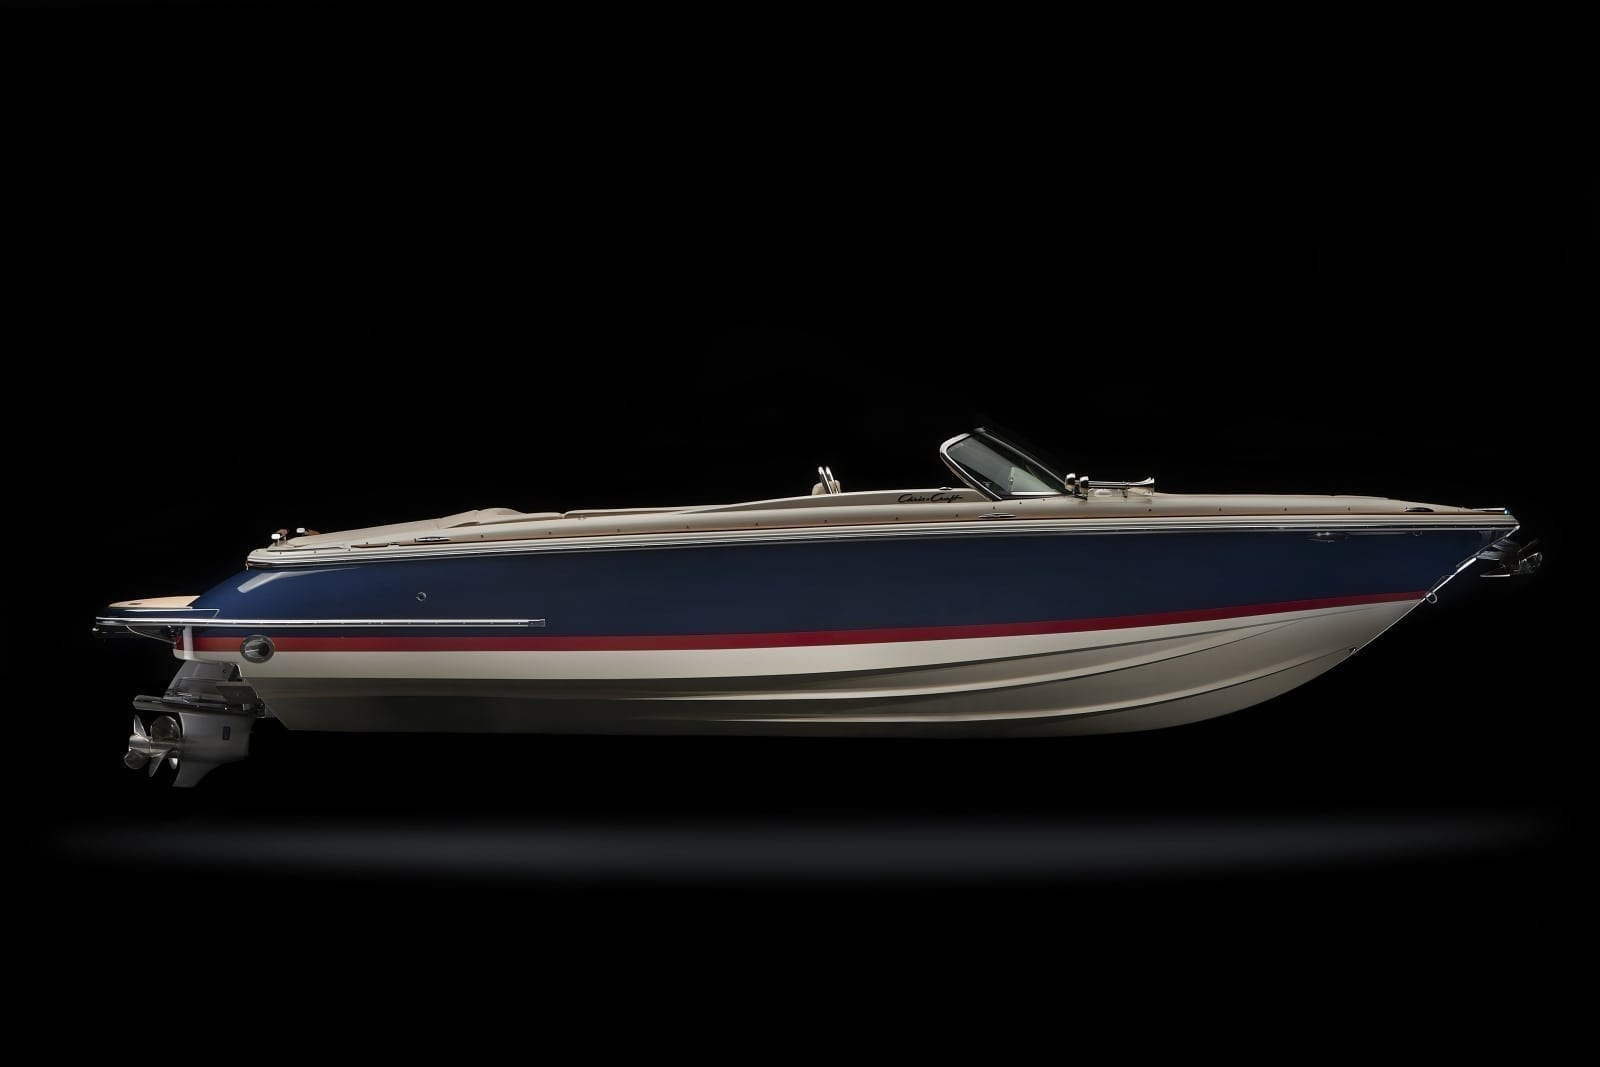 Chris Craft Launch 27 Starboard Profile View